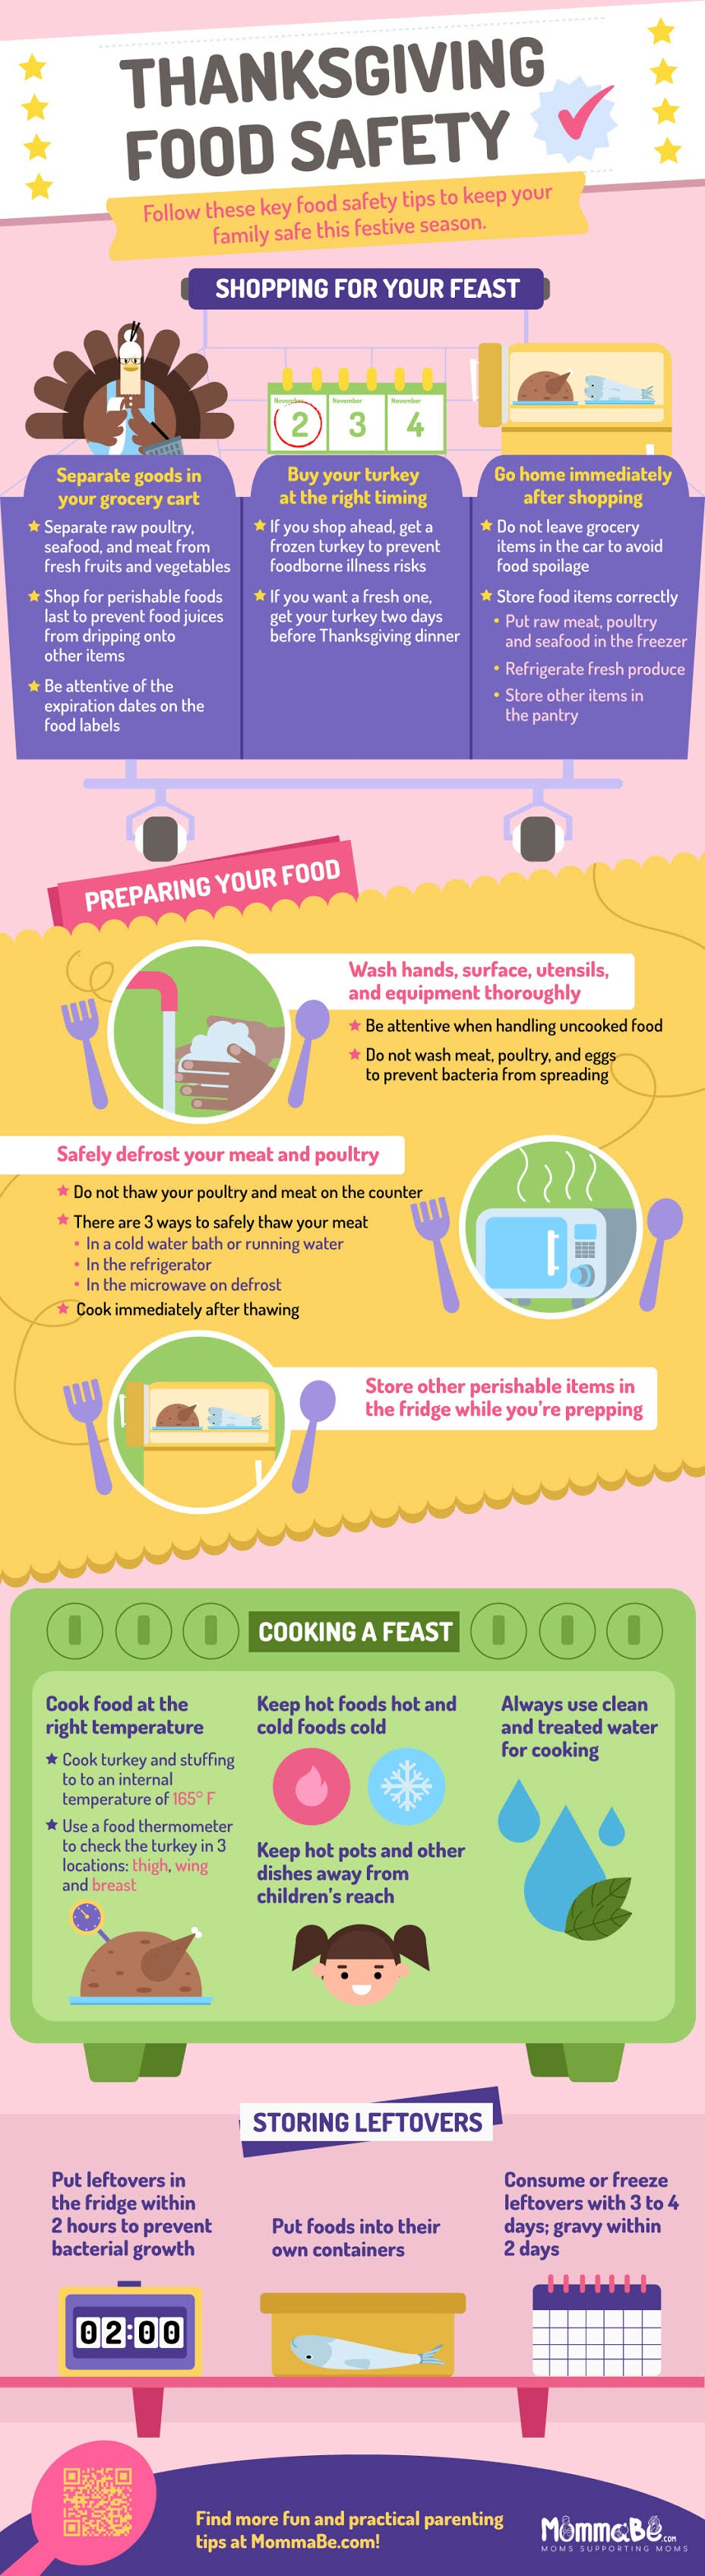 Thanksgiving Food Safety #infographic #Food #infographics #Food Safety